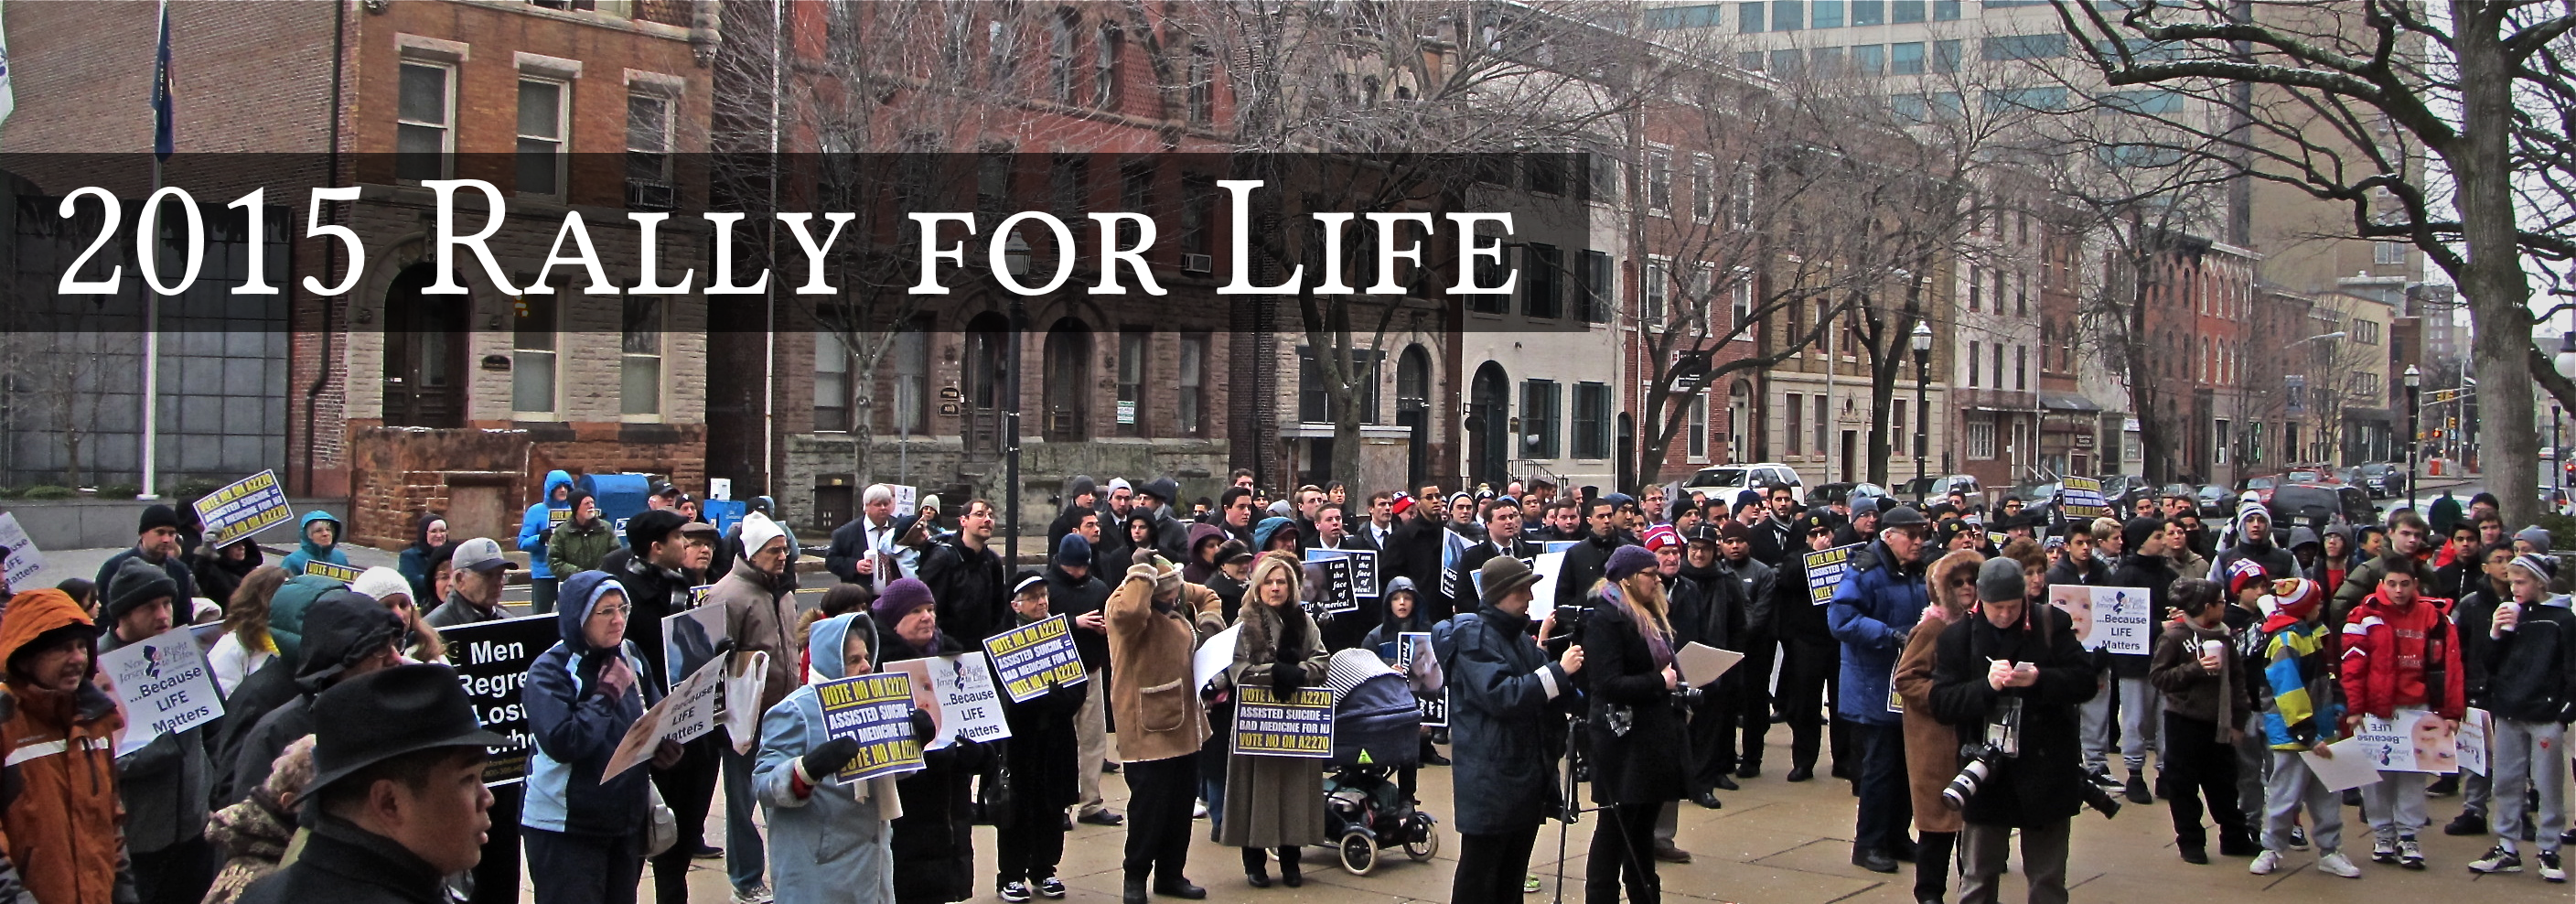 partial-group-shot-rally-for-life-2015